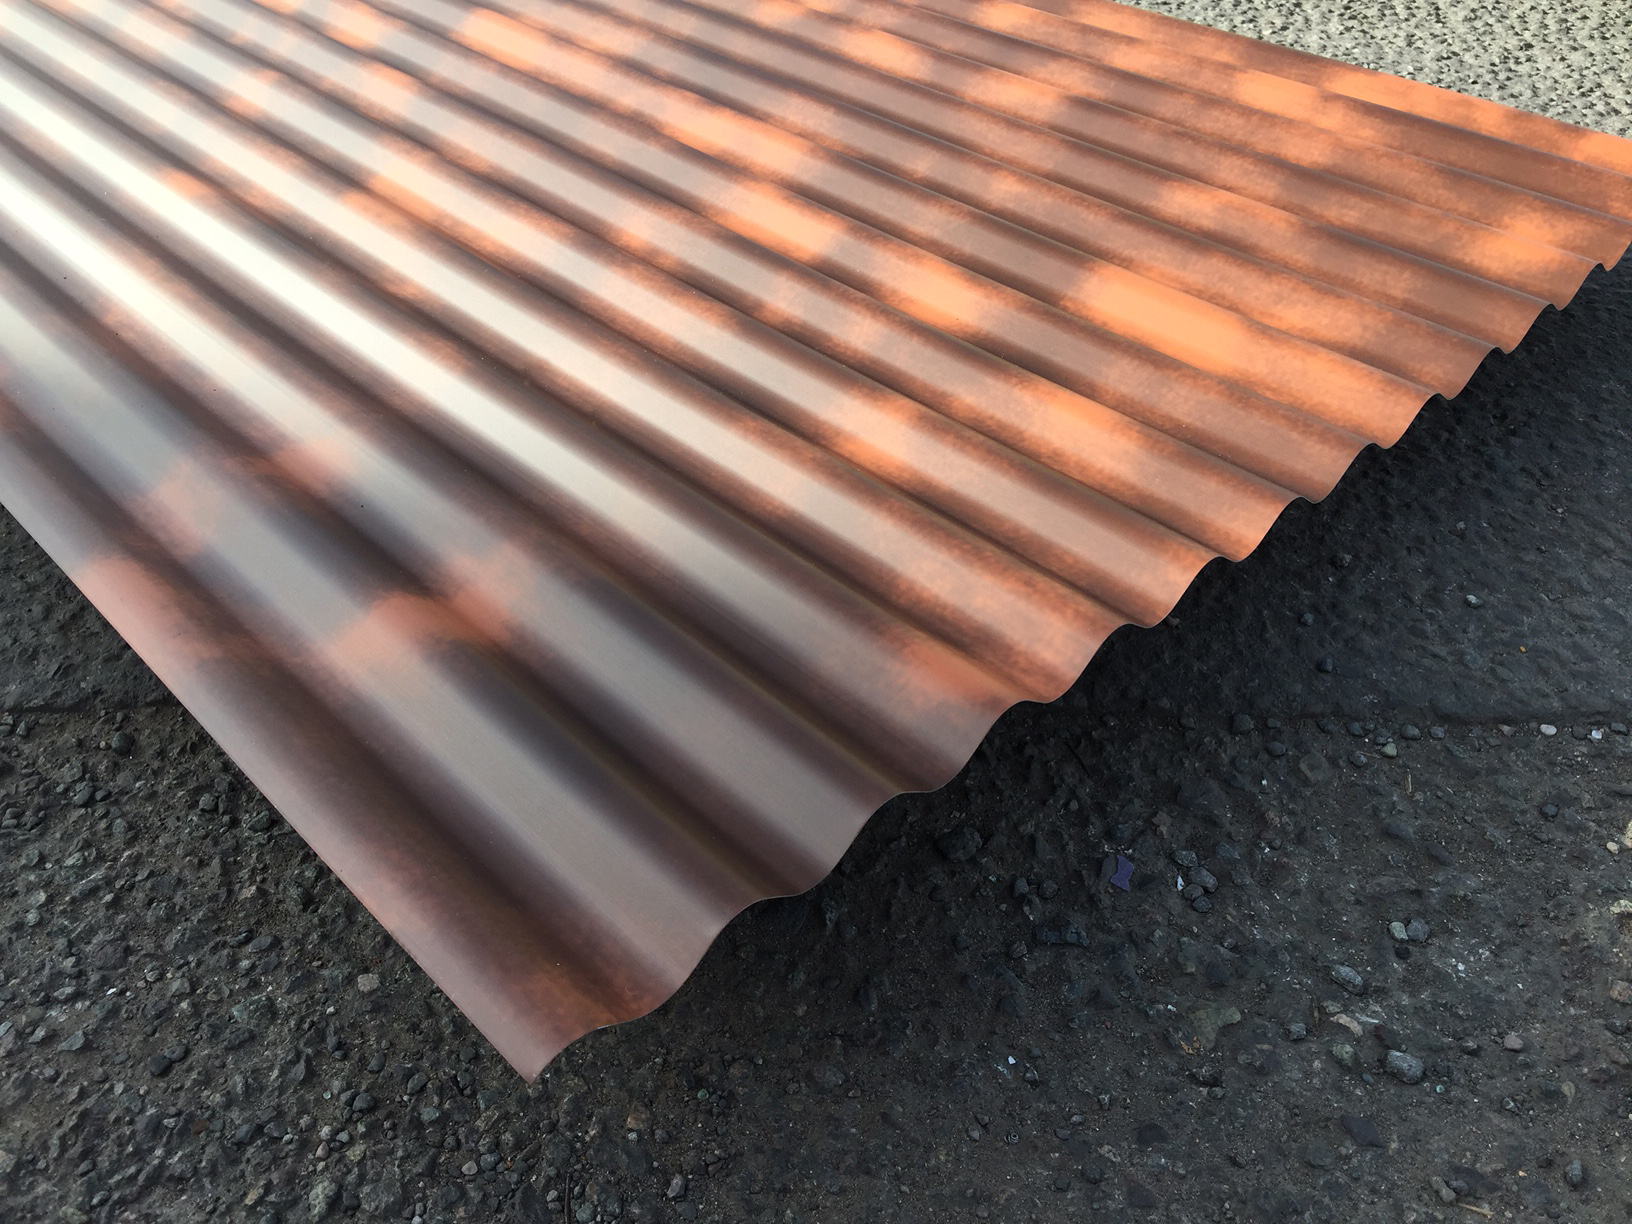 Corrugated Rust Effect Painted Sheets | Accord Steel Cladding